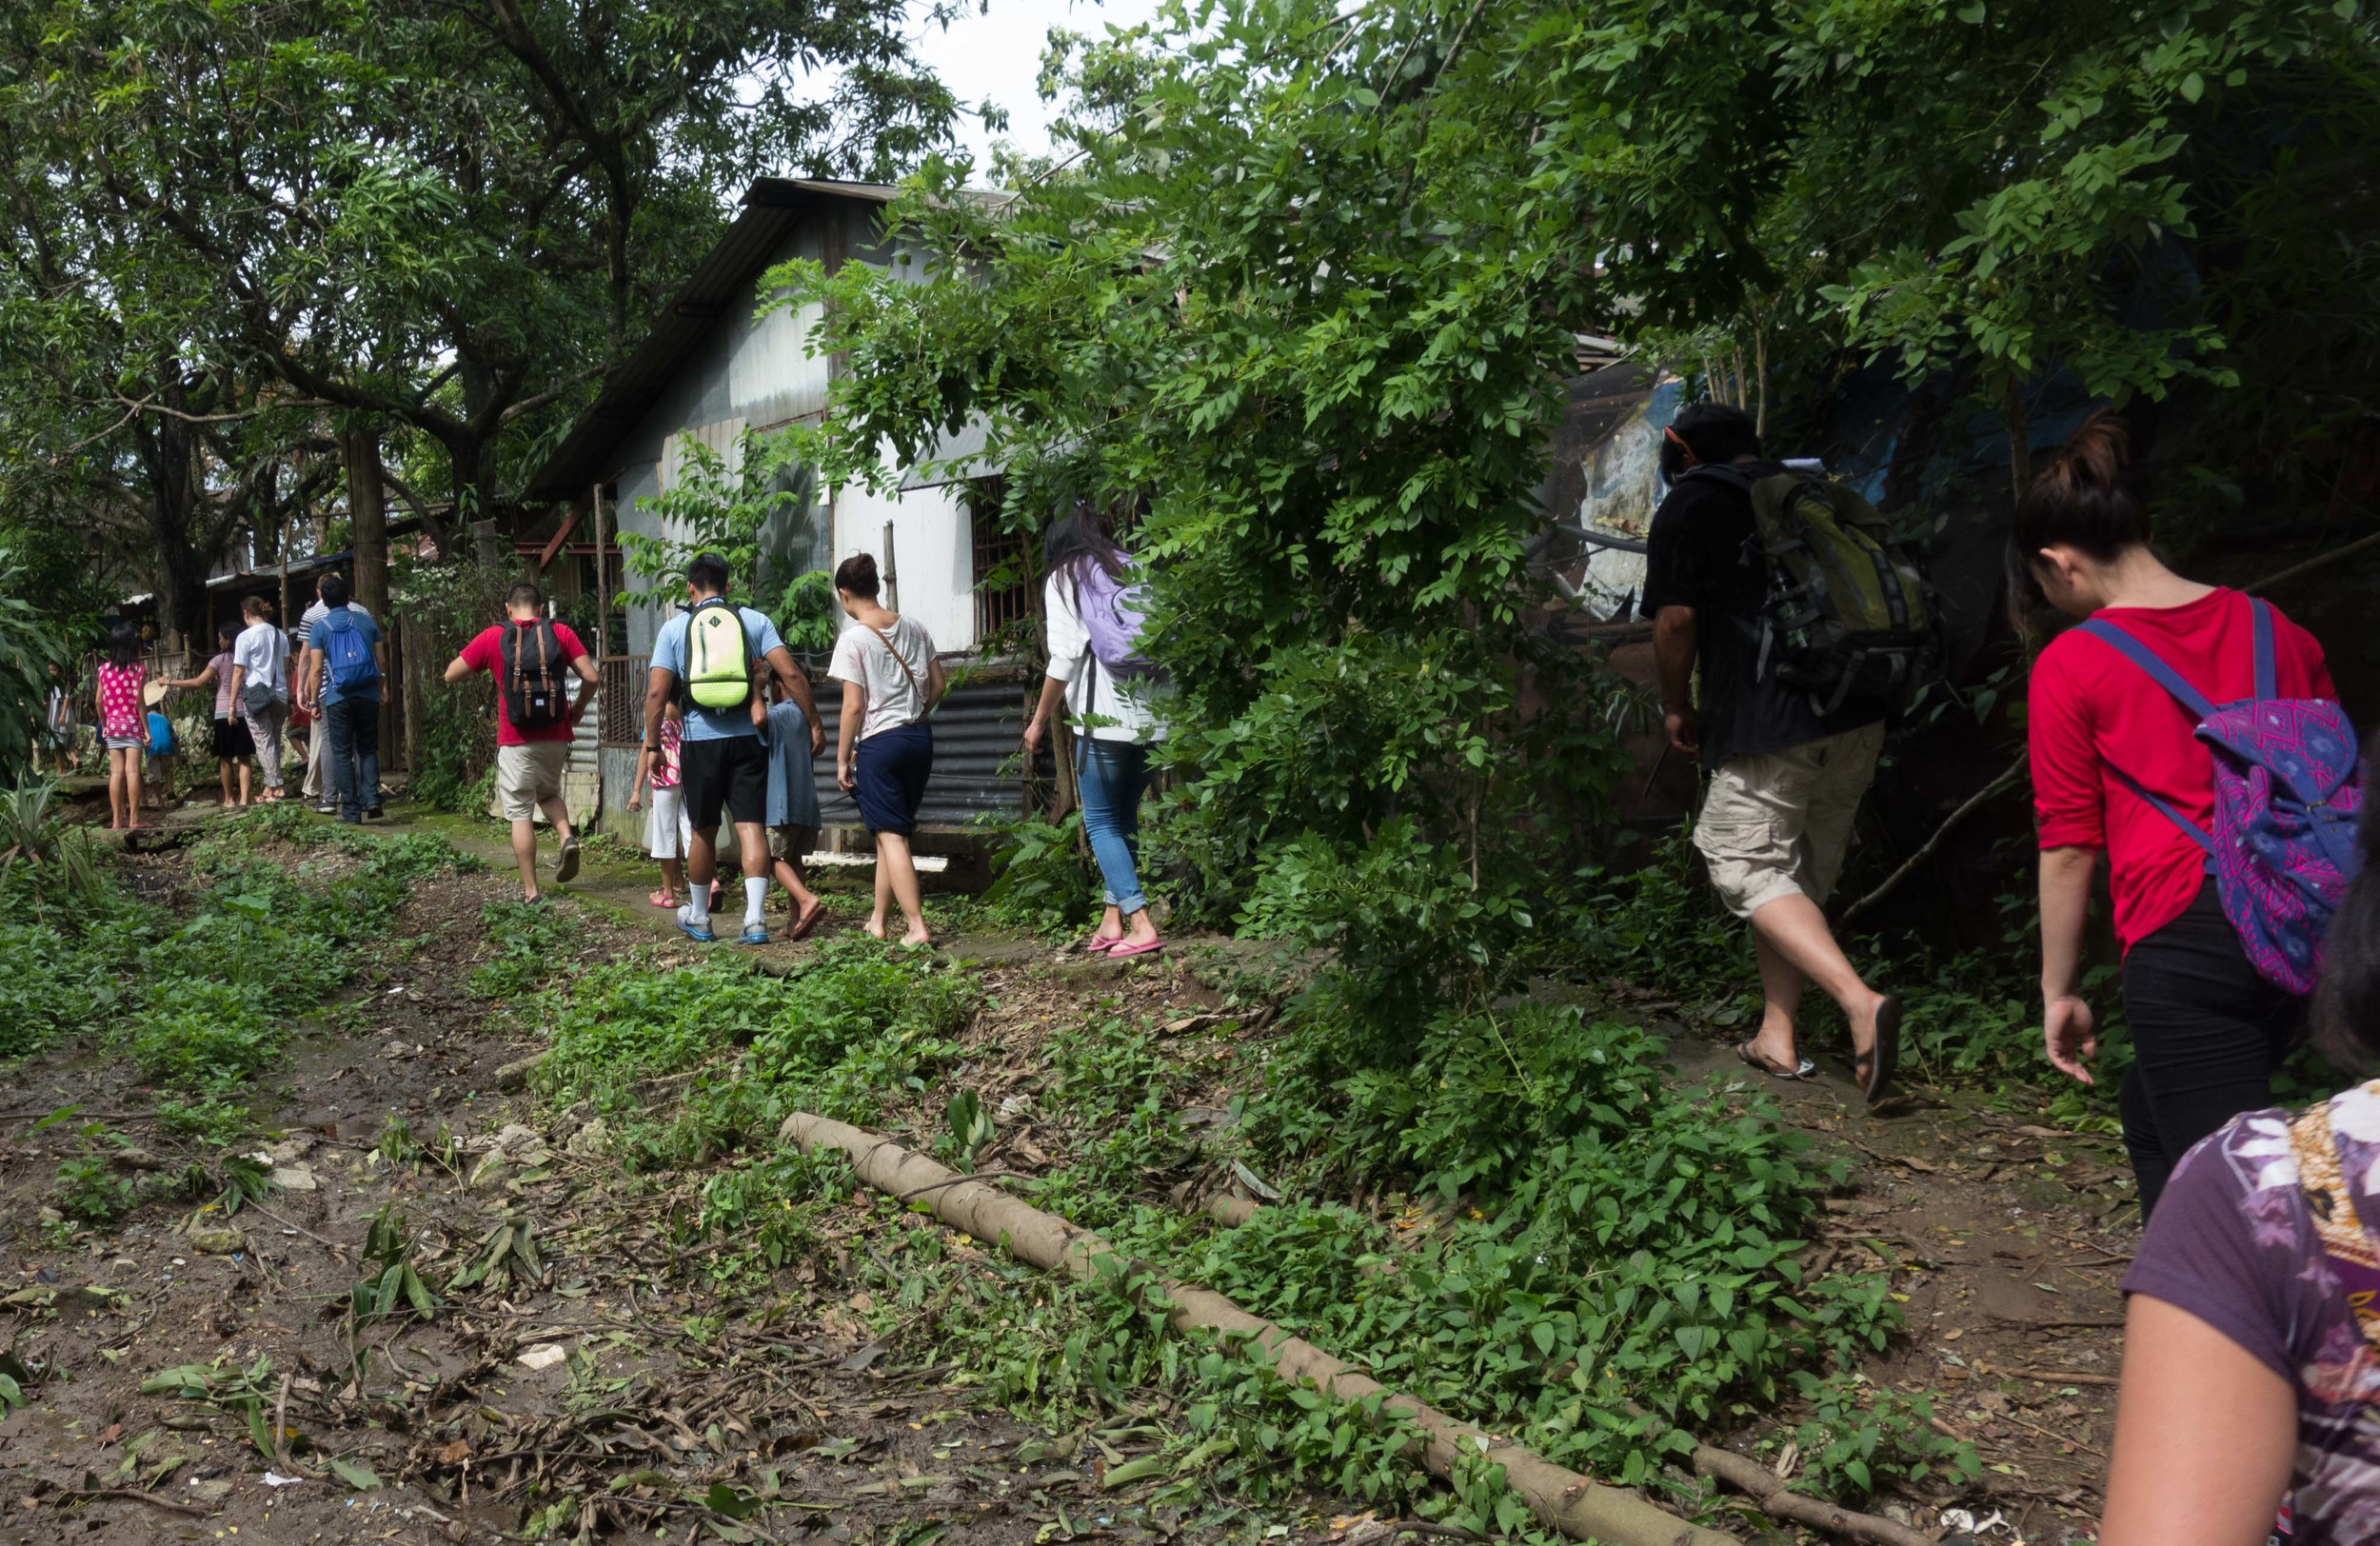 University of San Francisco students take a two week immersion program through the urban and rural communities in the Philippines to get a glimpse of life in extreme poverty. (Photo by Jordan Guingao)